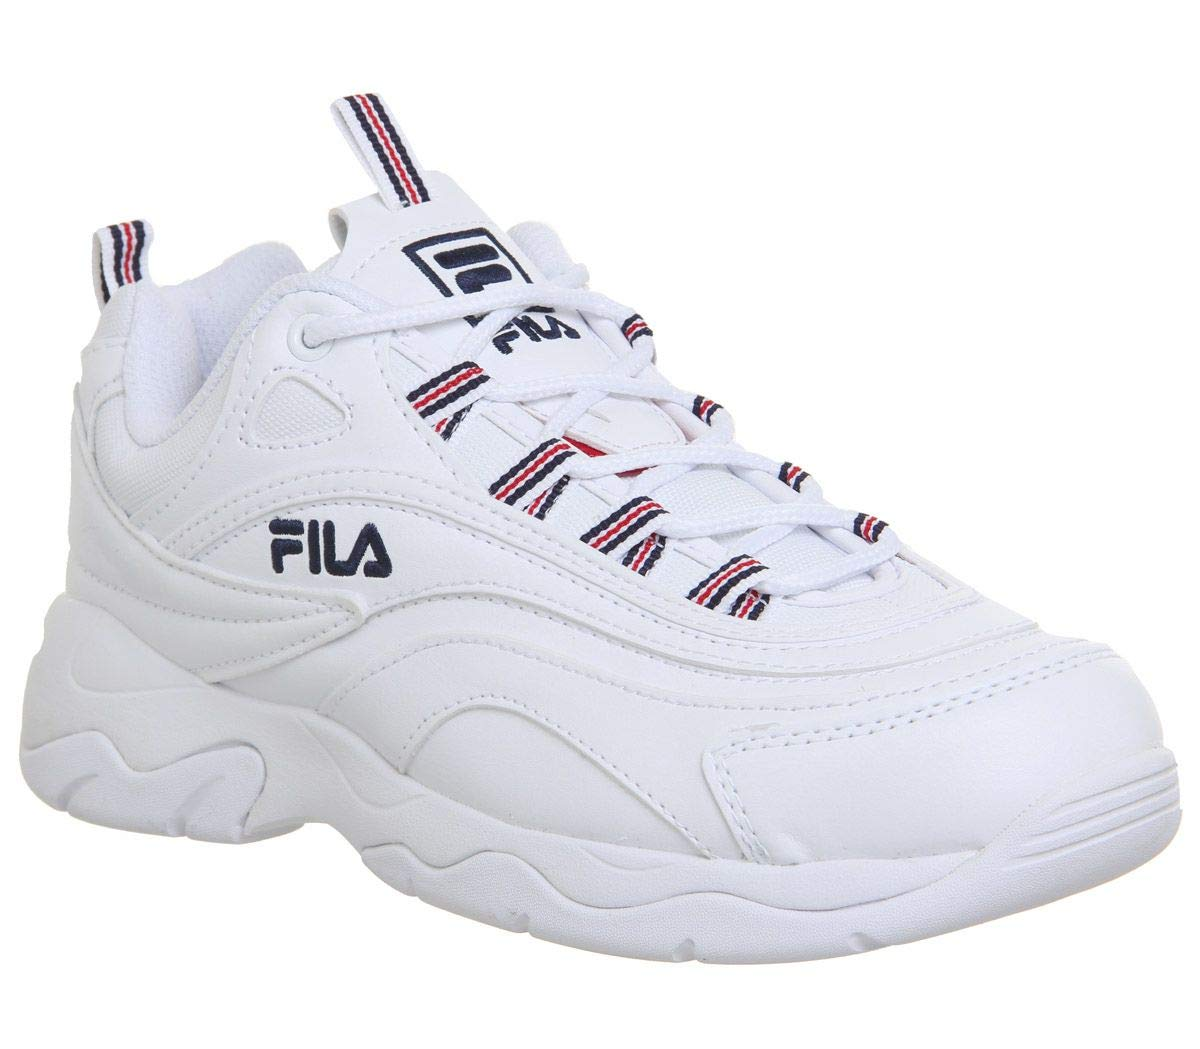 Fila Ray Damen Weiß/Marine/Rot Sneakers-UK 8 / EU 41